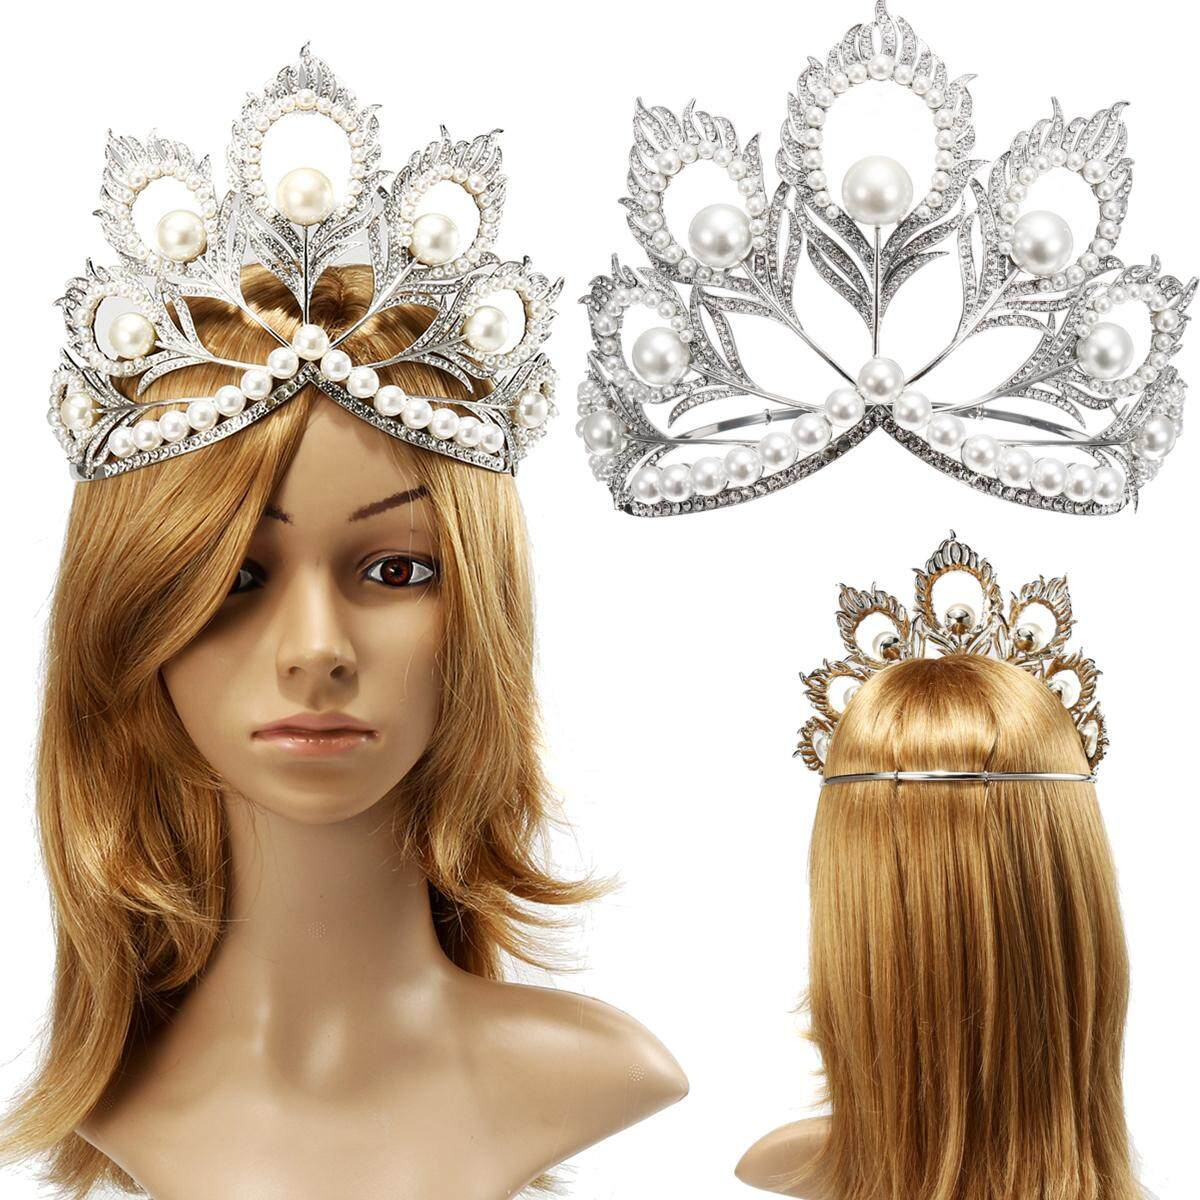 Miss Universe Crown Adjustable Pearl Wedding Bridal Tiaras Beauty Pageant Tiara By Moonbeam.